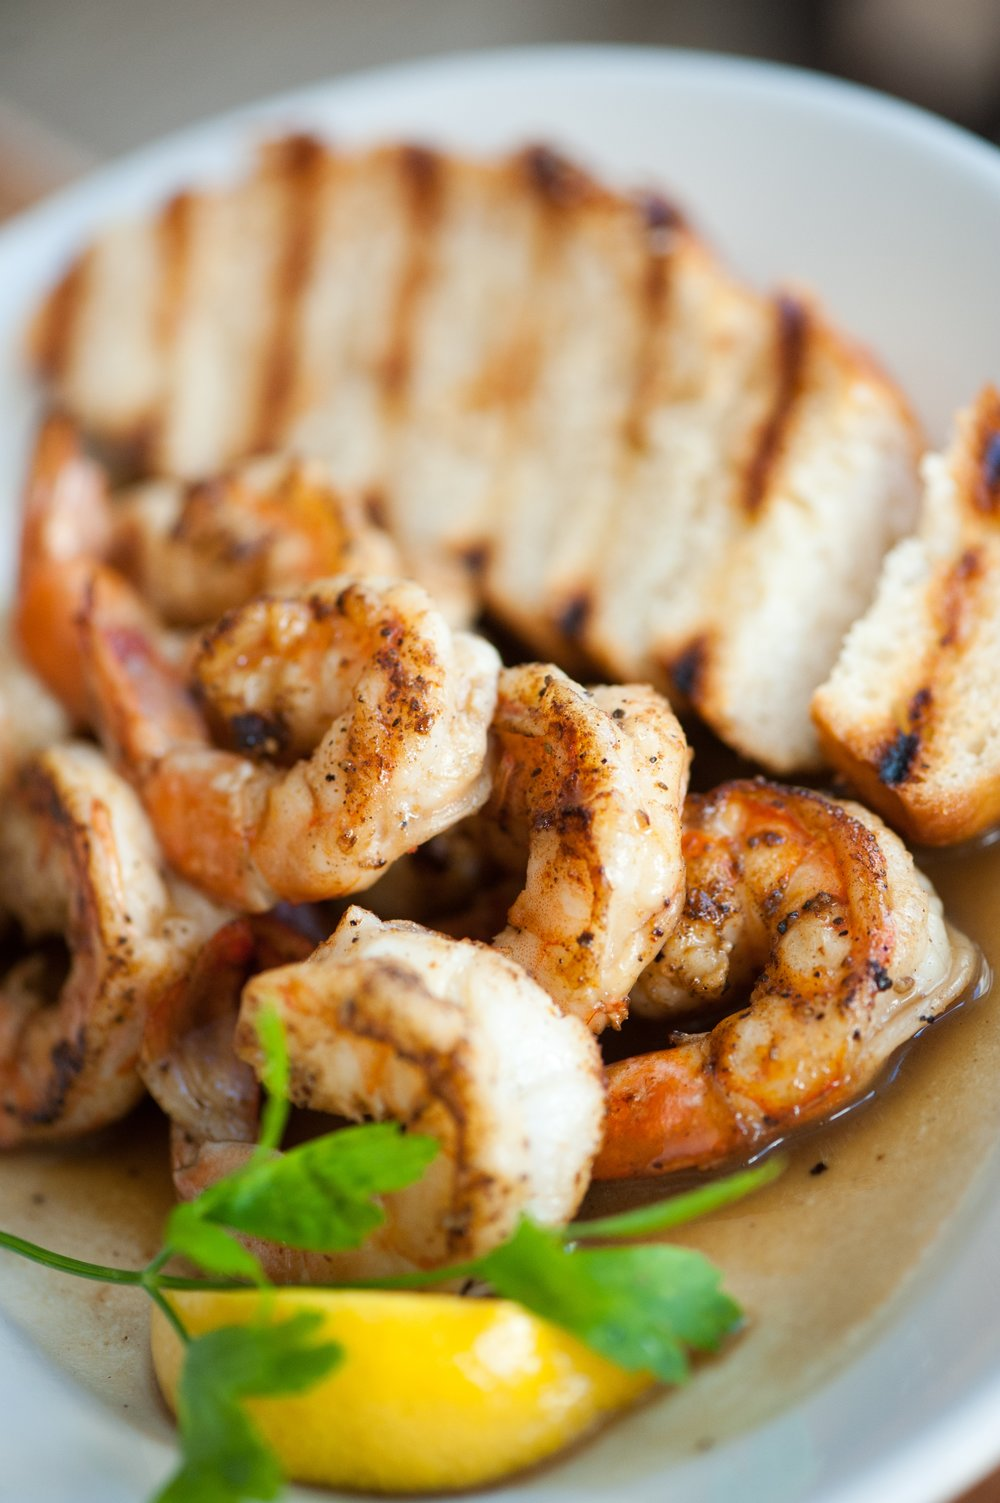 broiled shrimp2.JPG